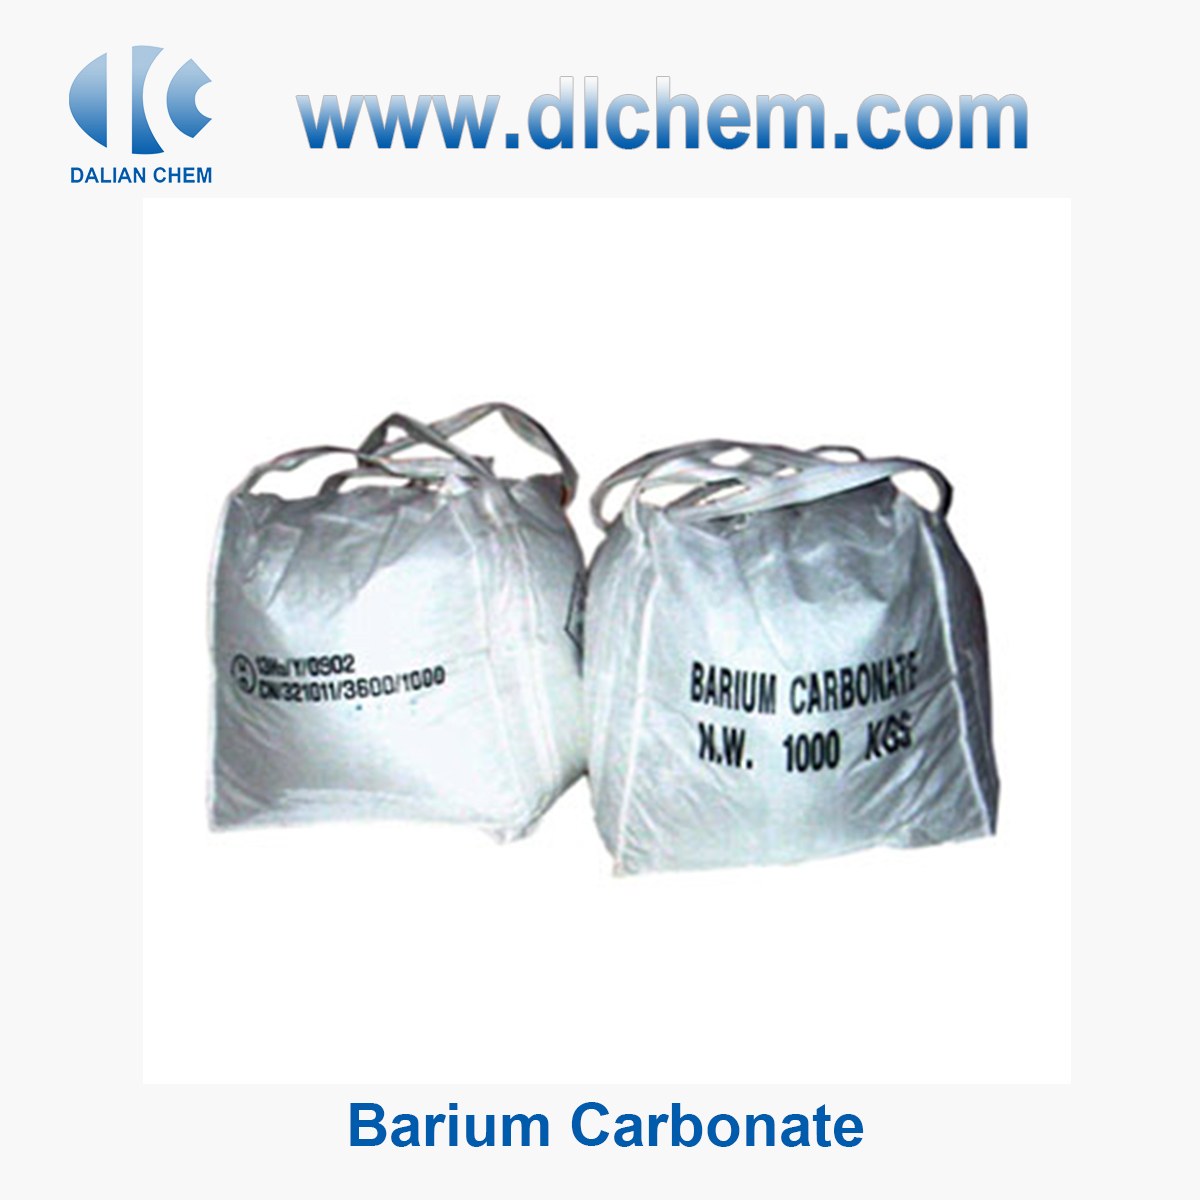 Barium Carbonate CAS No.513-77-9